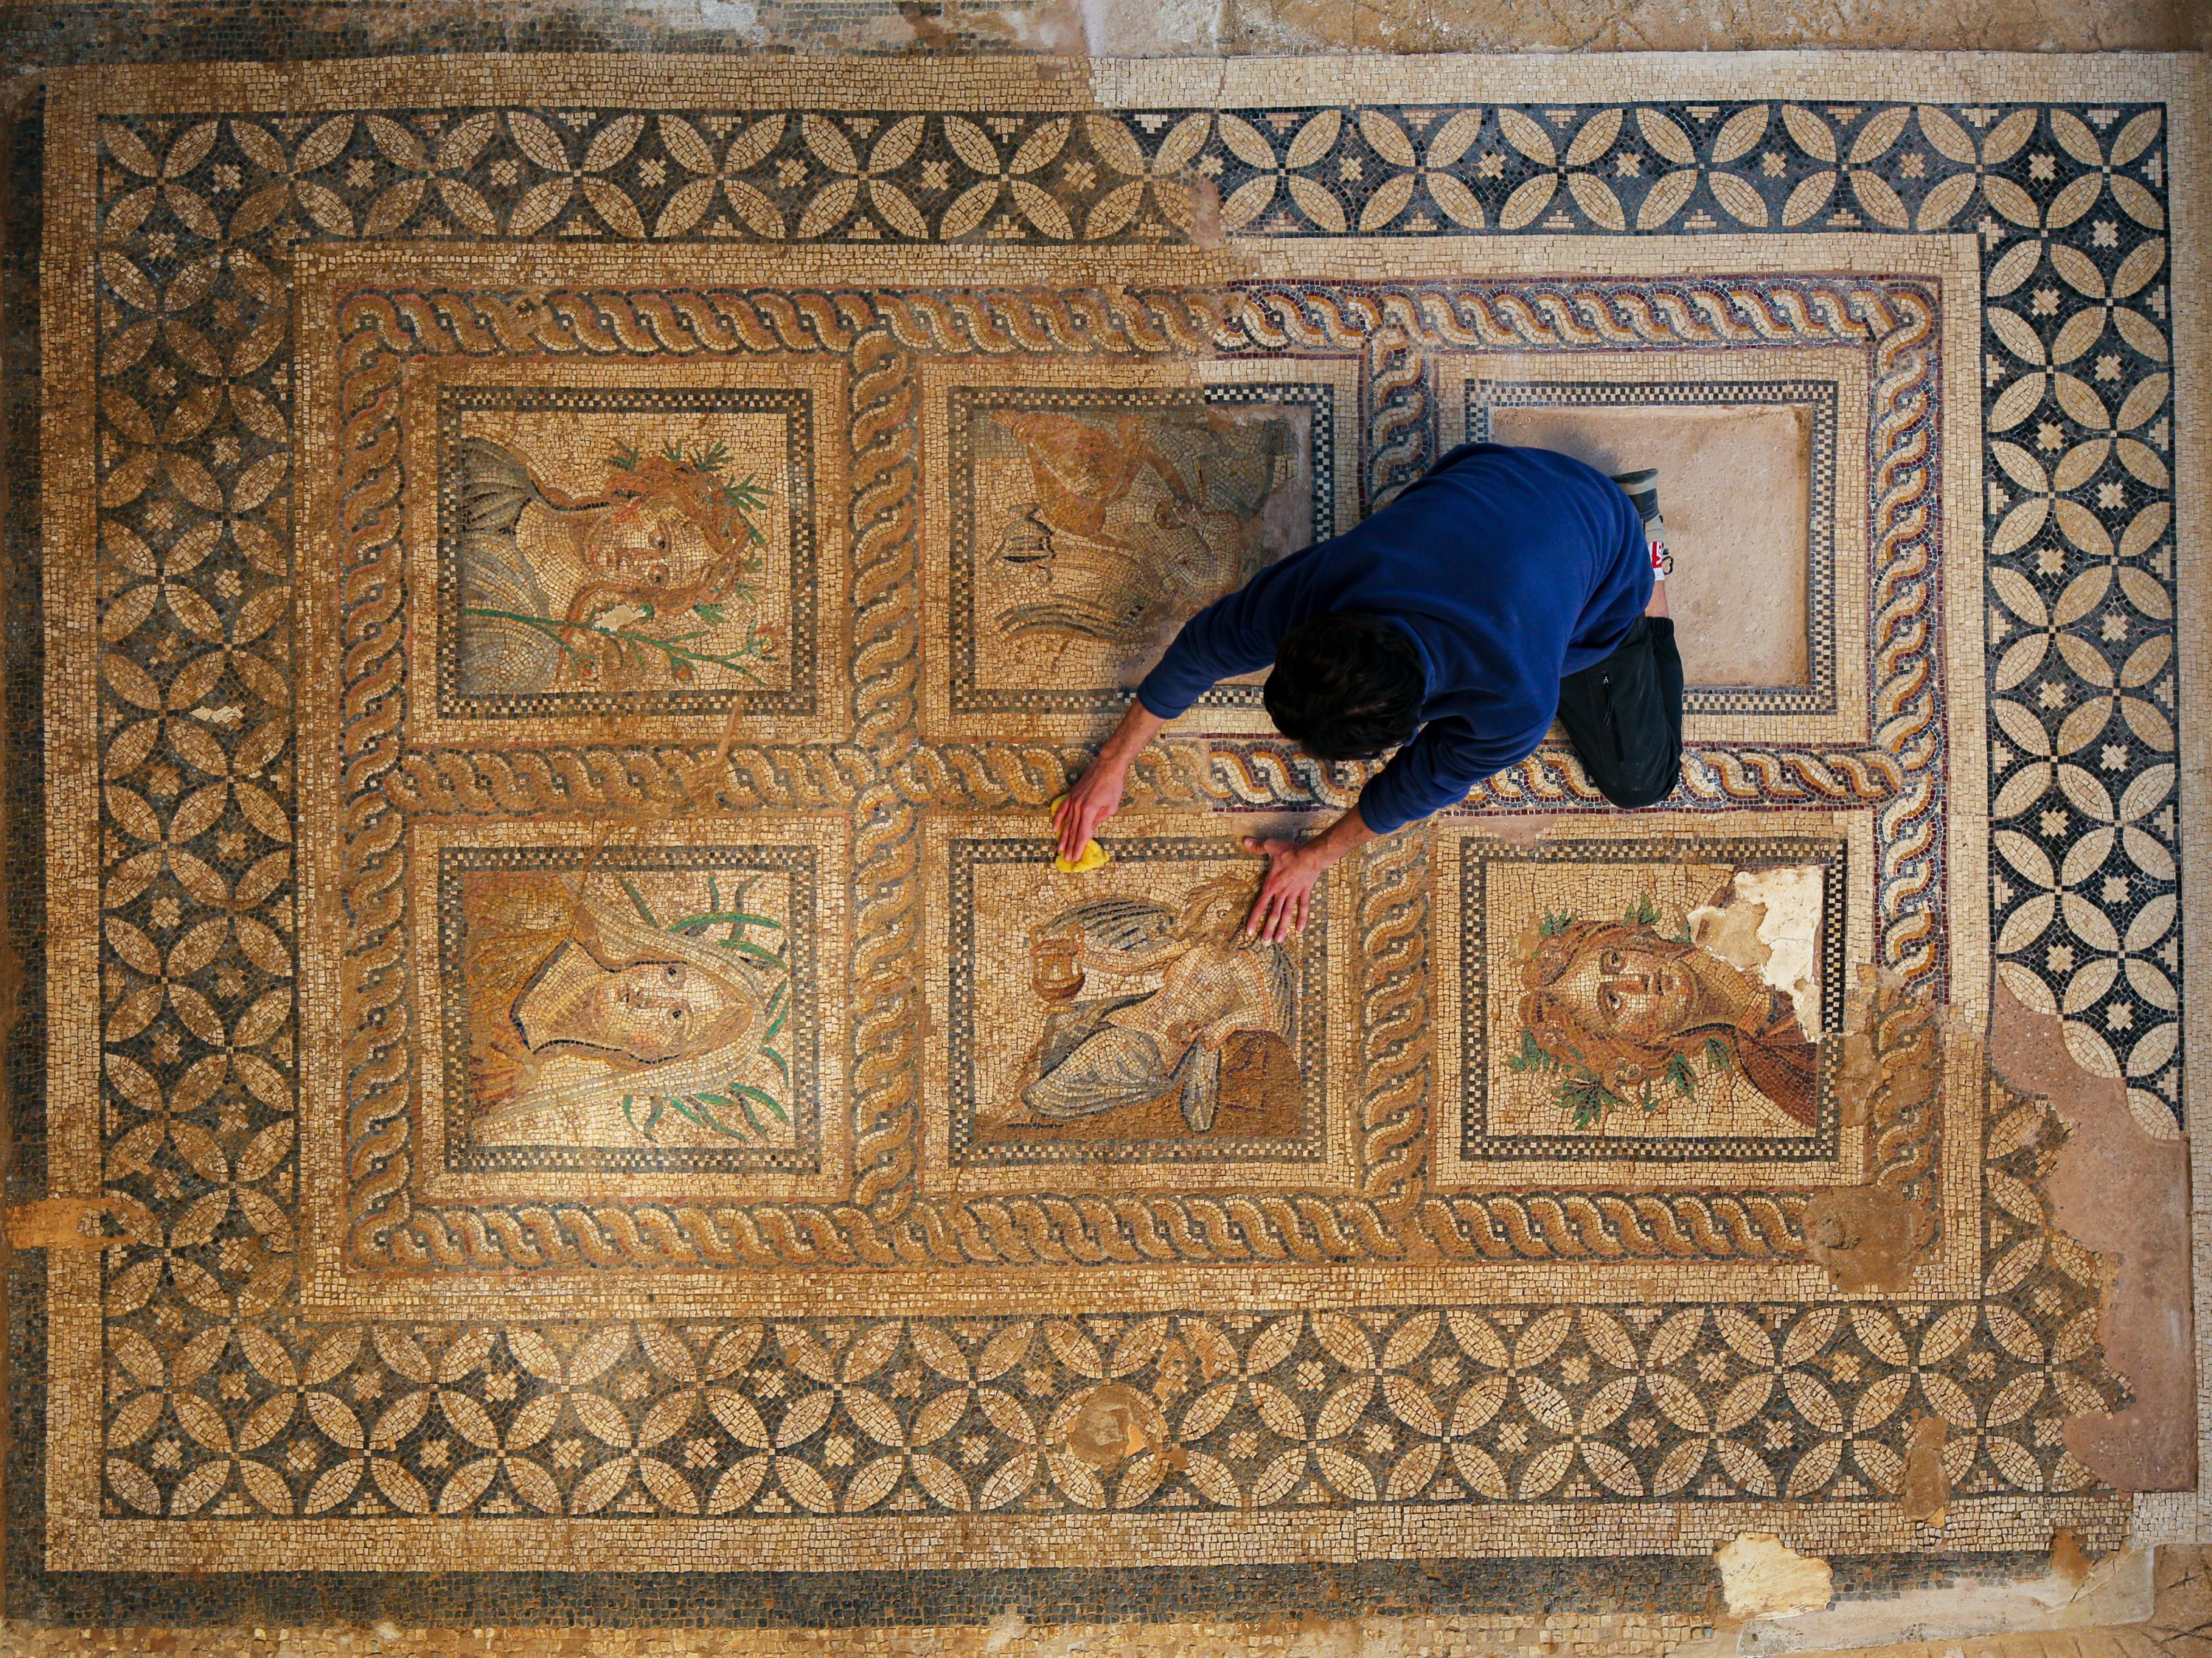 An official cleans the mosaics found in the ancient city of Metropolis, Izmir, western Turkey, June 28, 2021. (AA Photo)